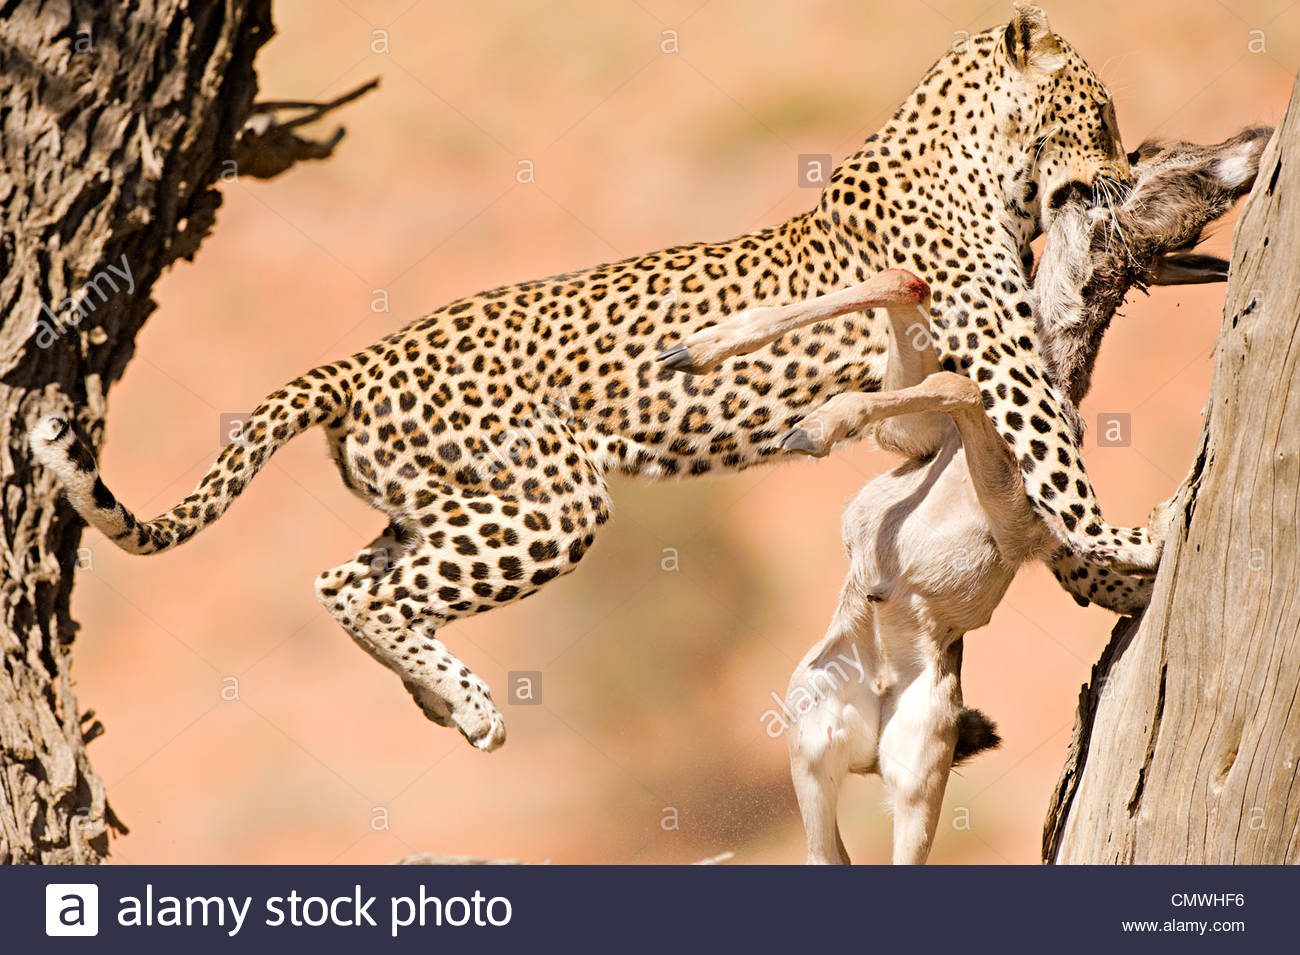 Leopard jumping from 1 tree trunk to an other tree trunk to stash her prey - Stock Image